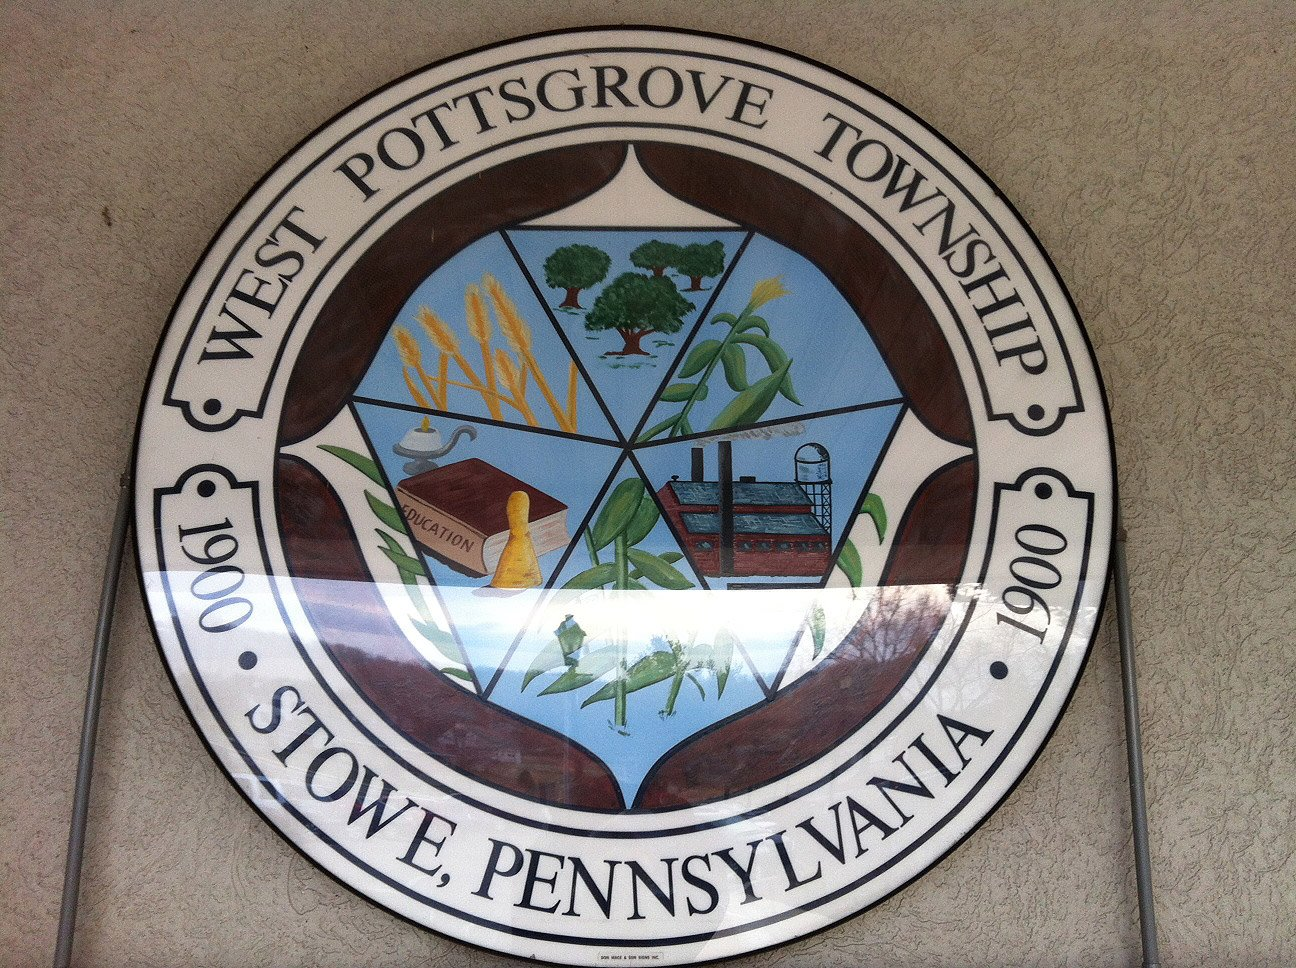 Headed over to the West Pottsgrove Township Commissioners to see what's up. Follow along for live Tweets if you'd like to know too. https://t.co/wh0HPyF4Yo